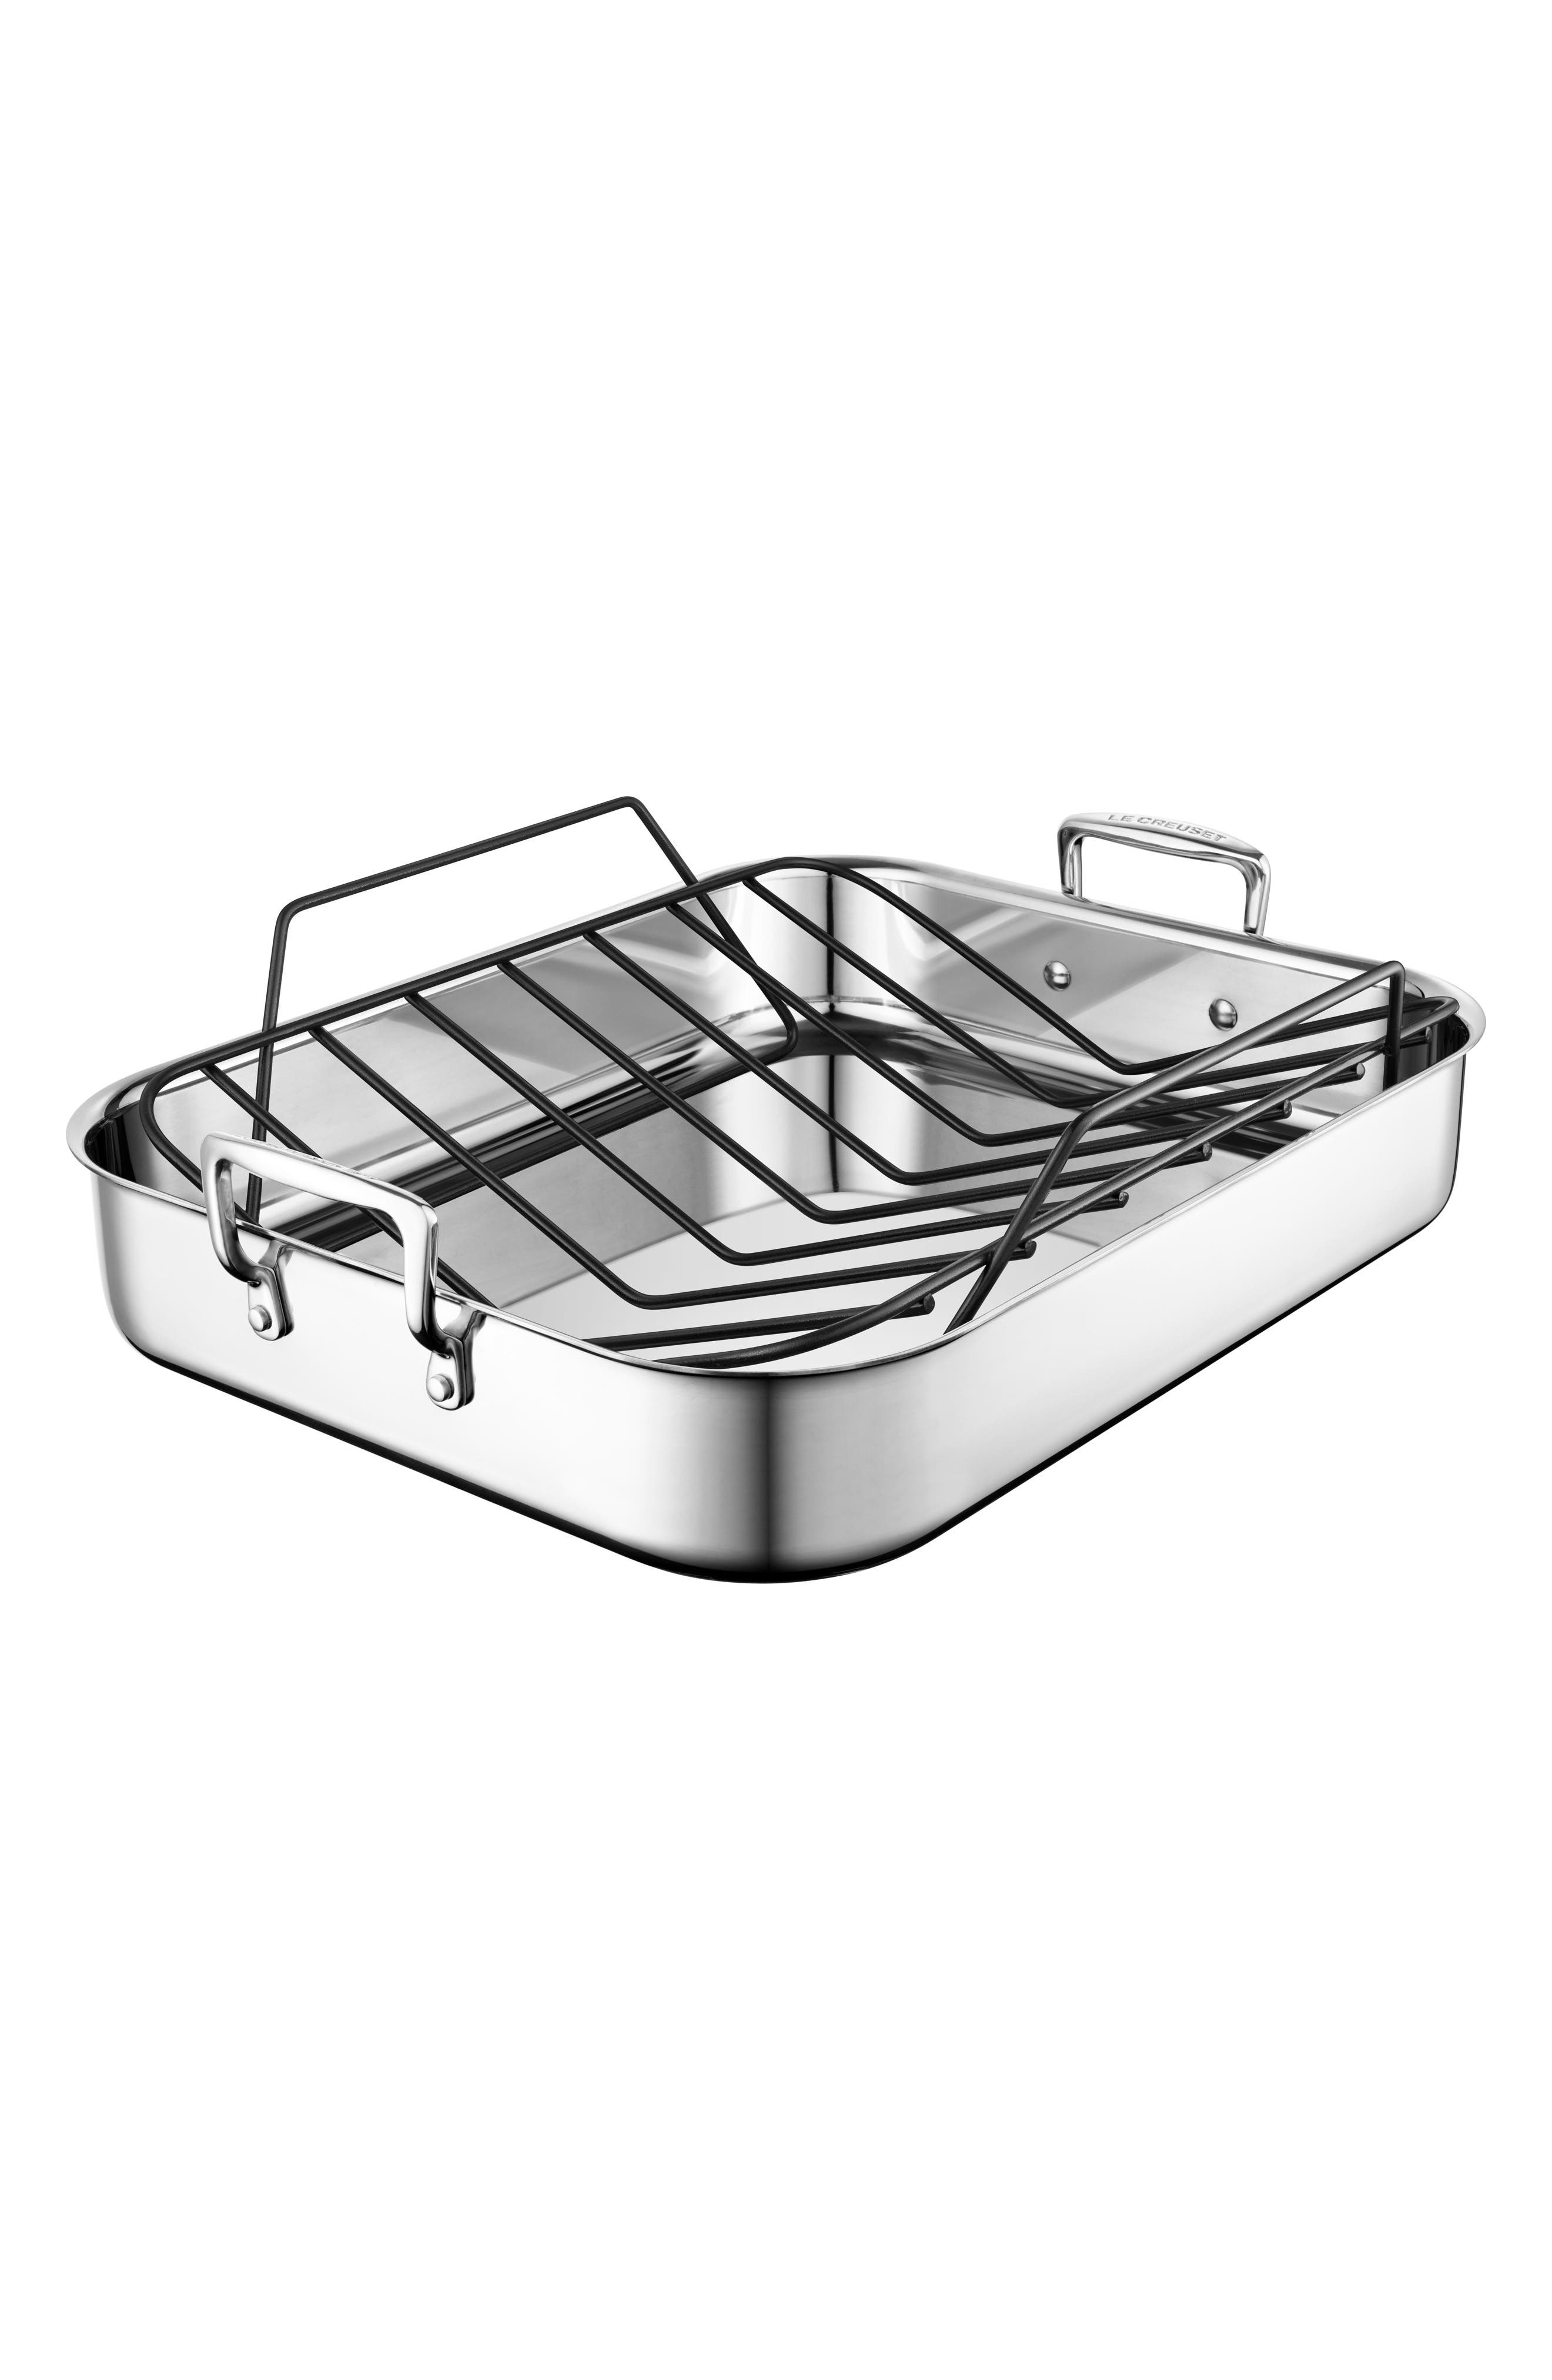 Le Creuset Large Roasting Pan